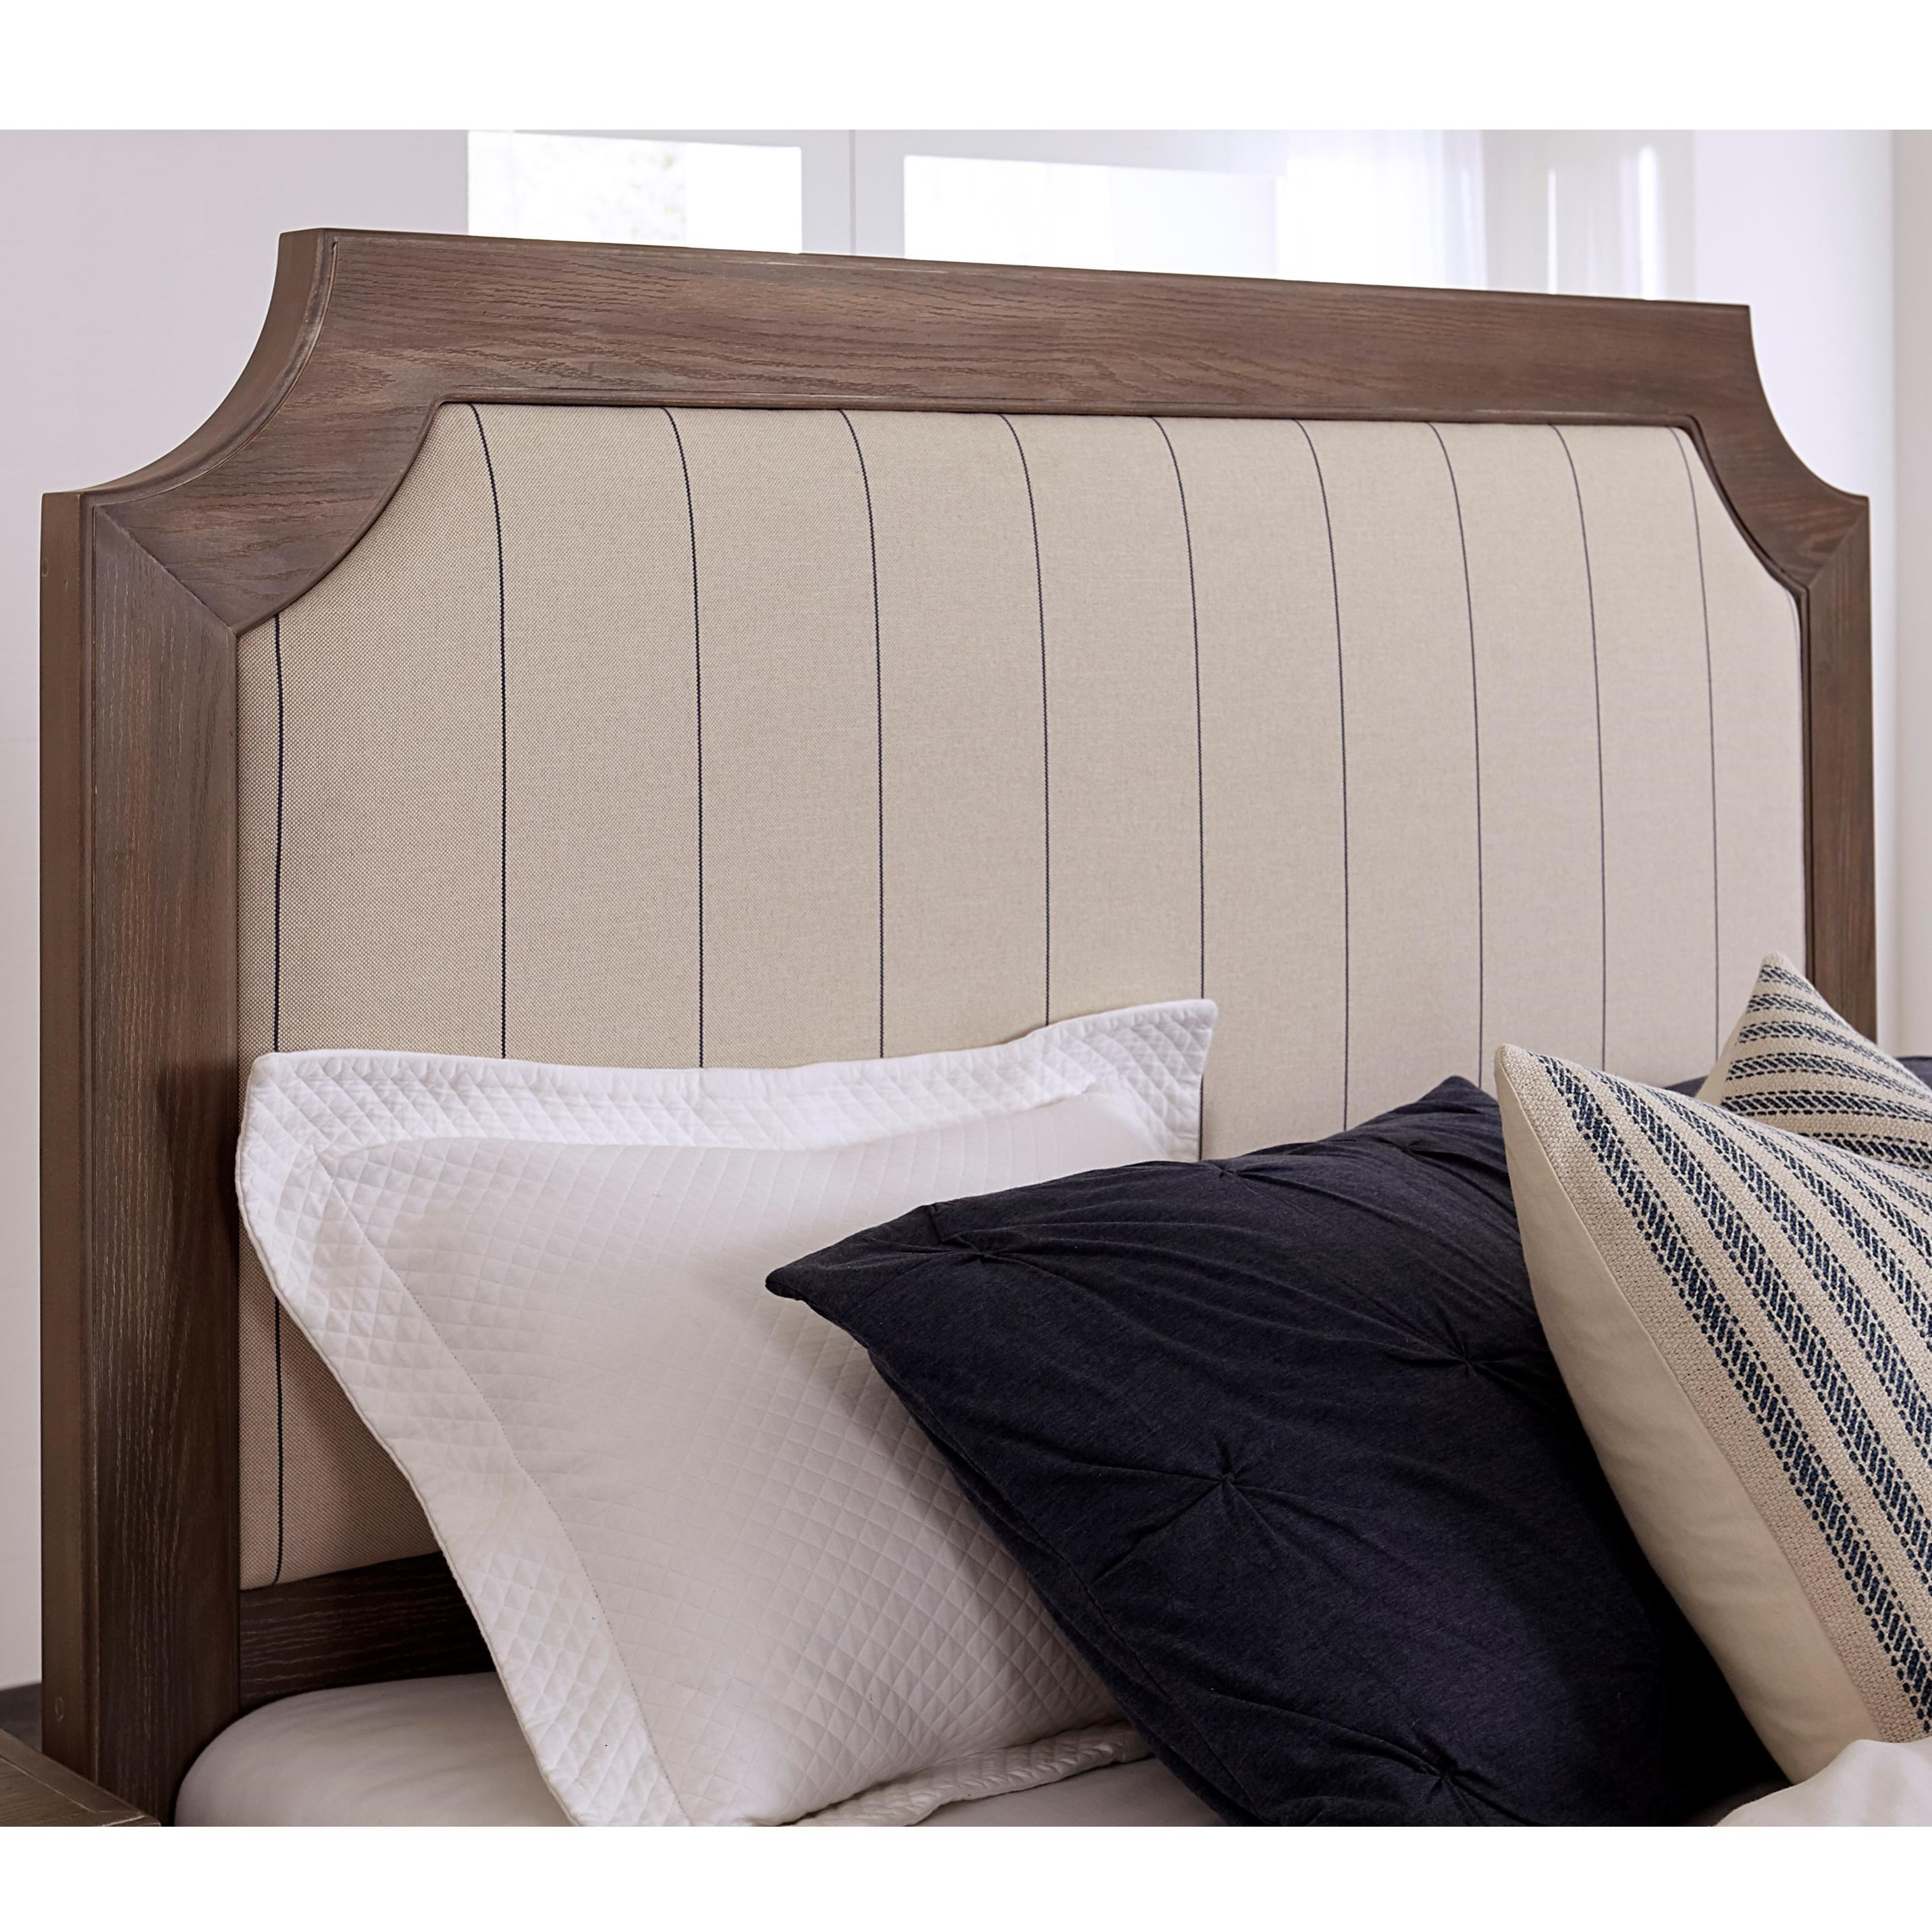 Bungalow King Upholstered Headboard by Laurel Mercantile Co. at Johnny Janosik